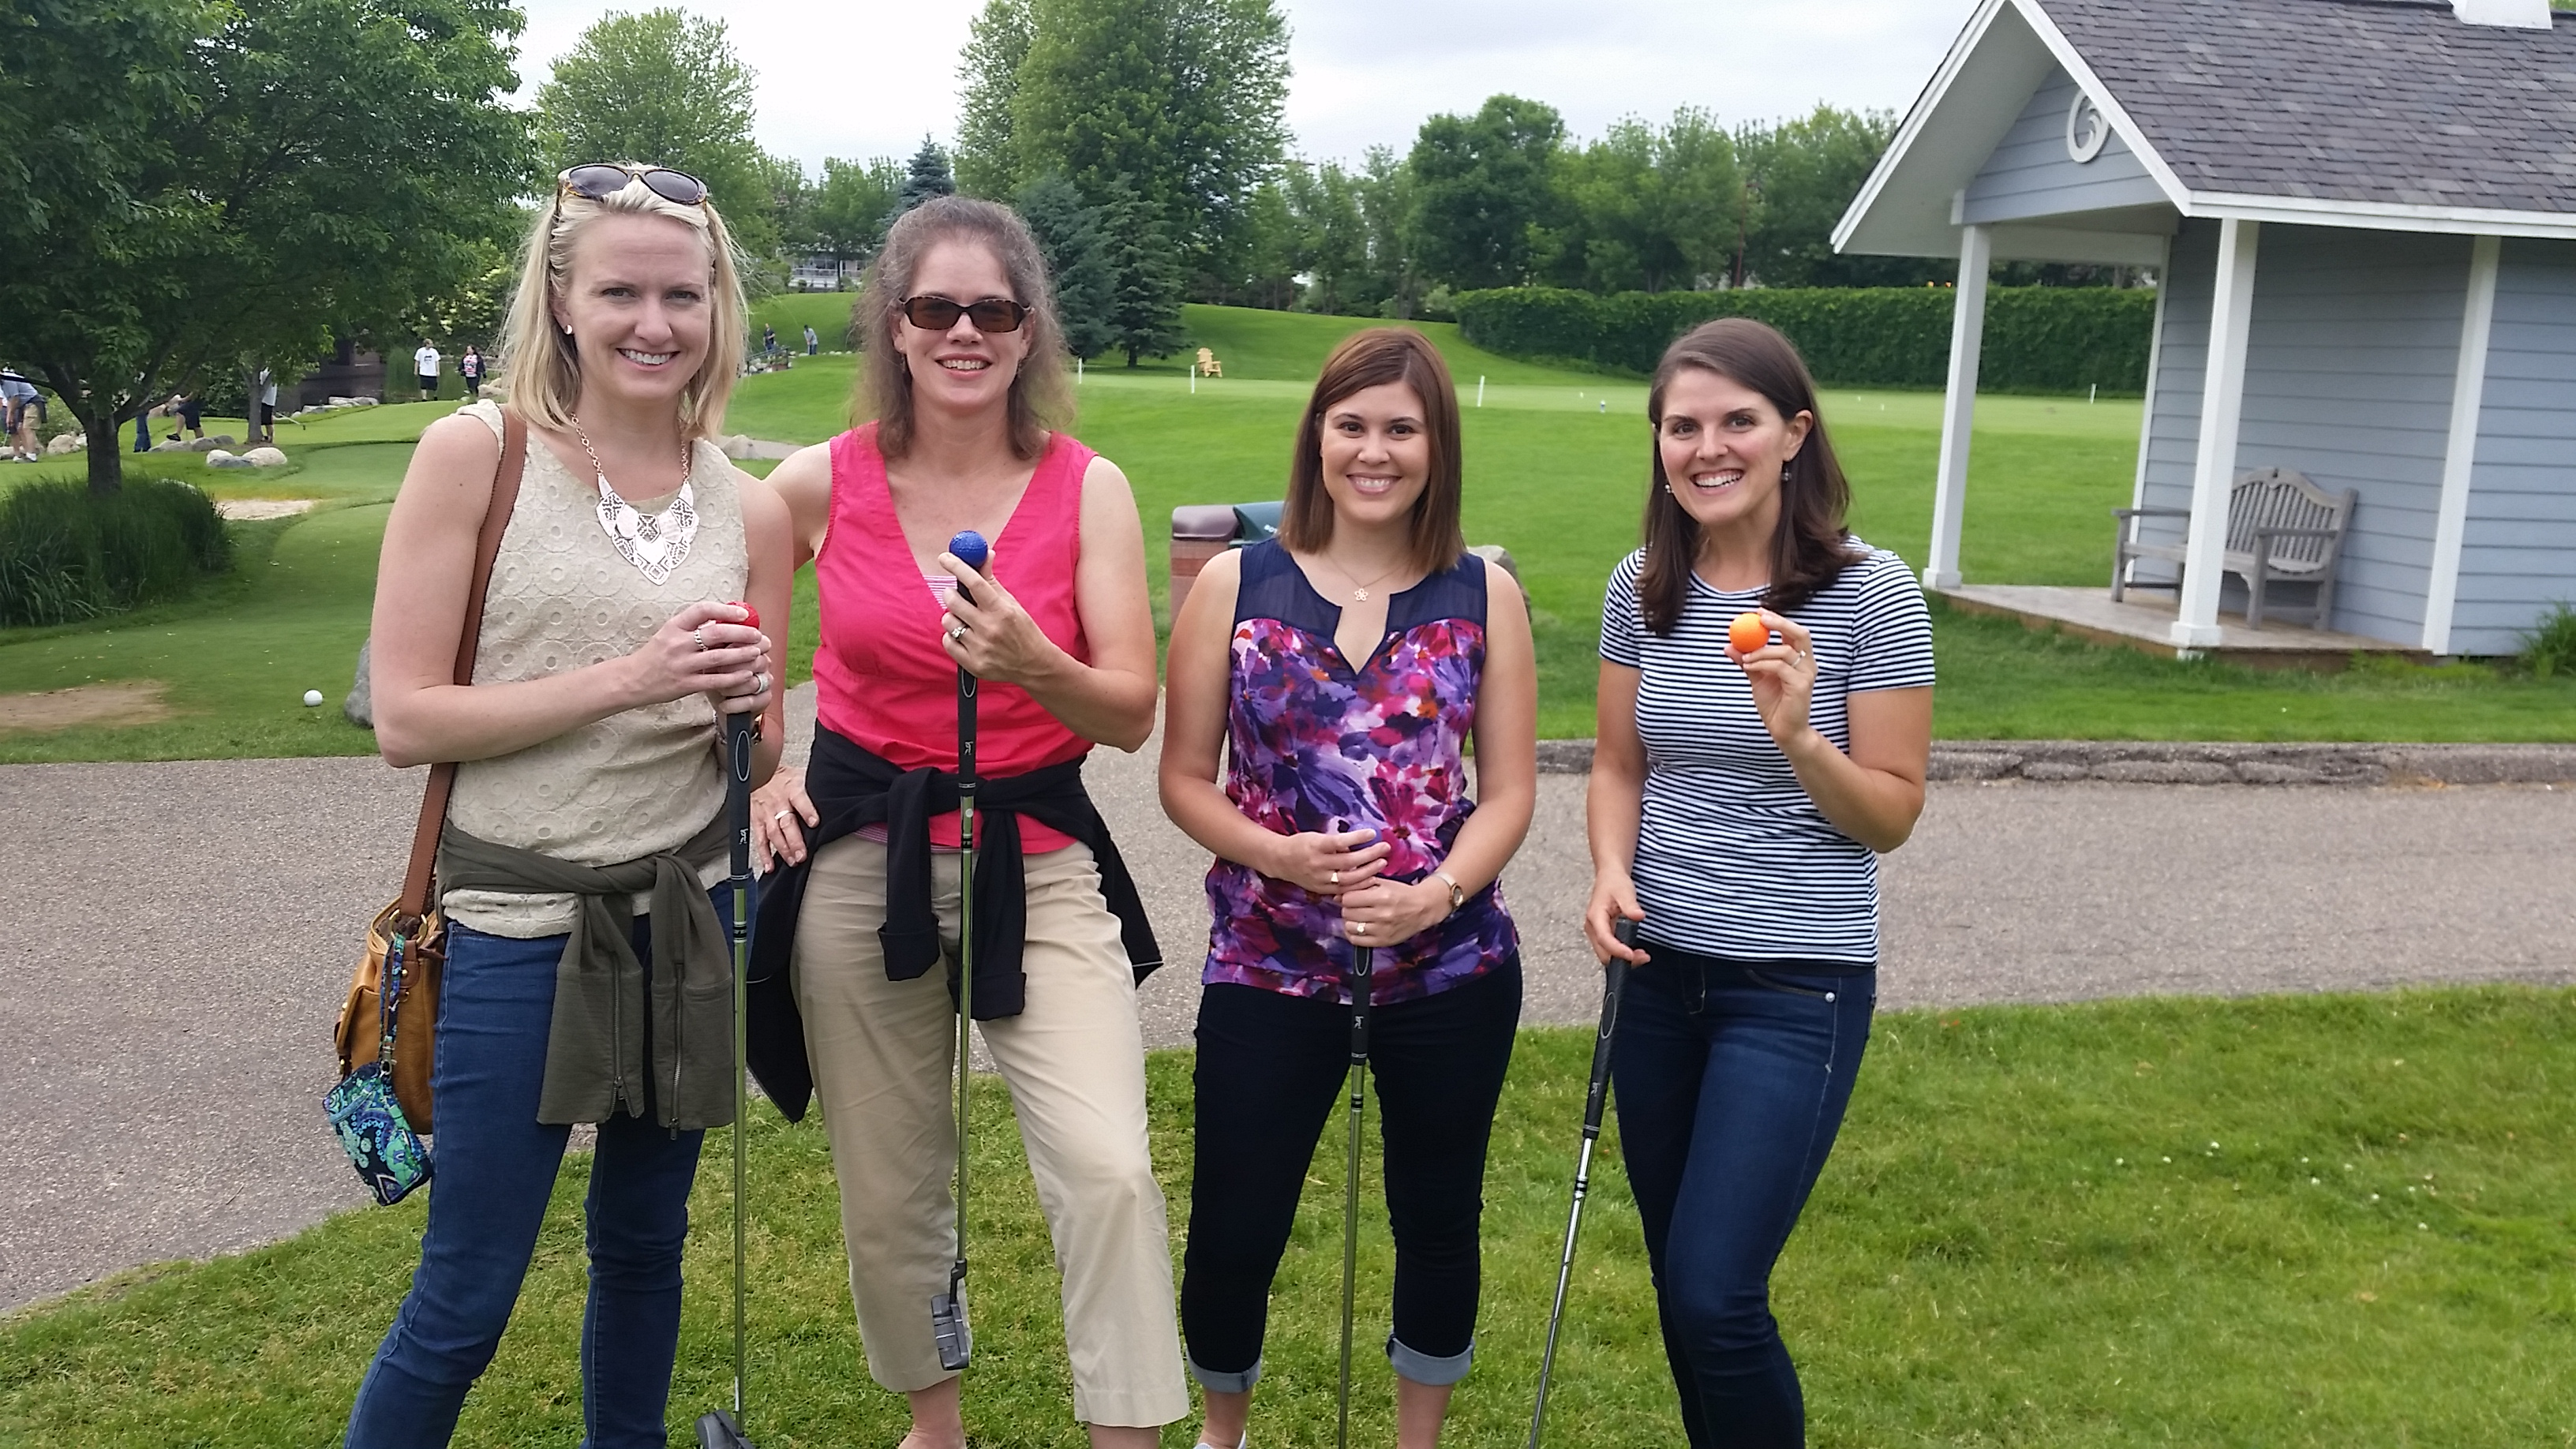 Four young adult ladies miniature golfing